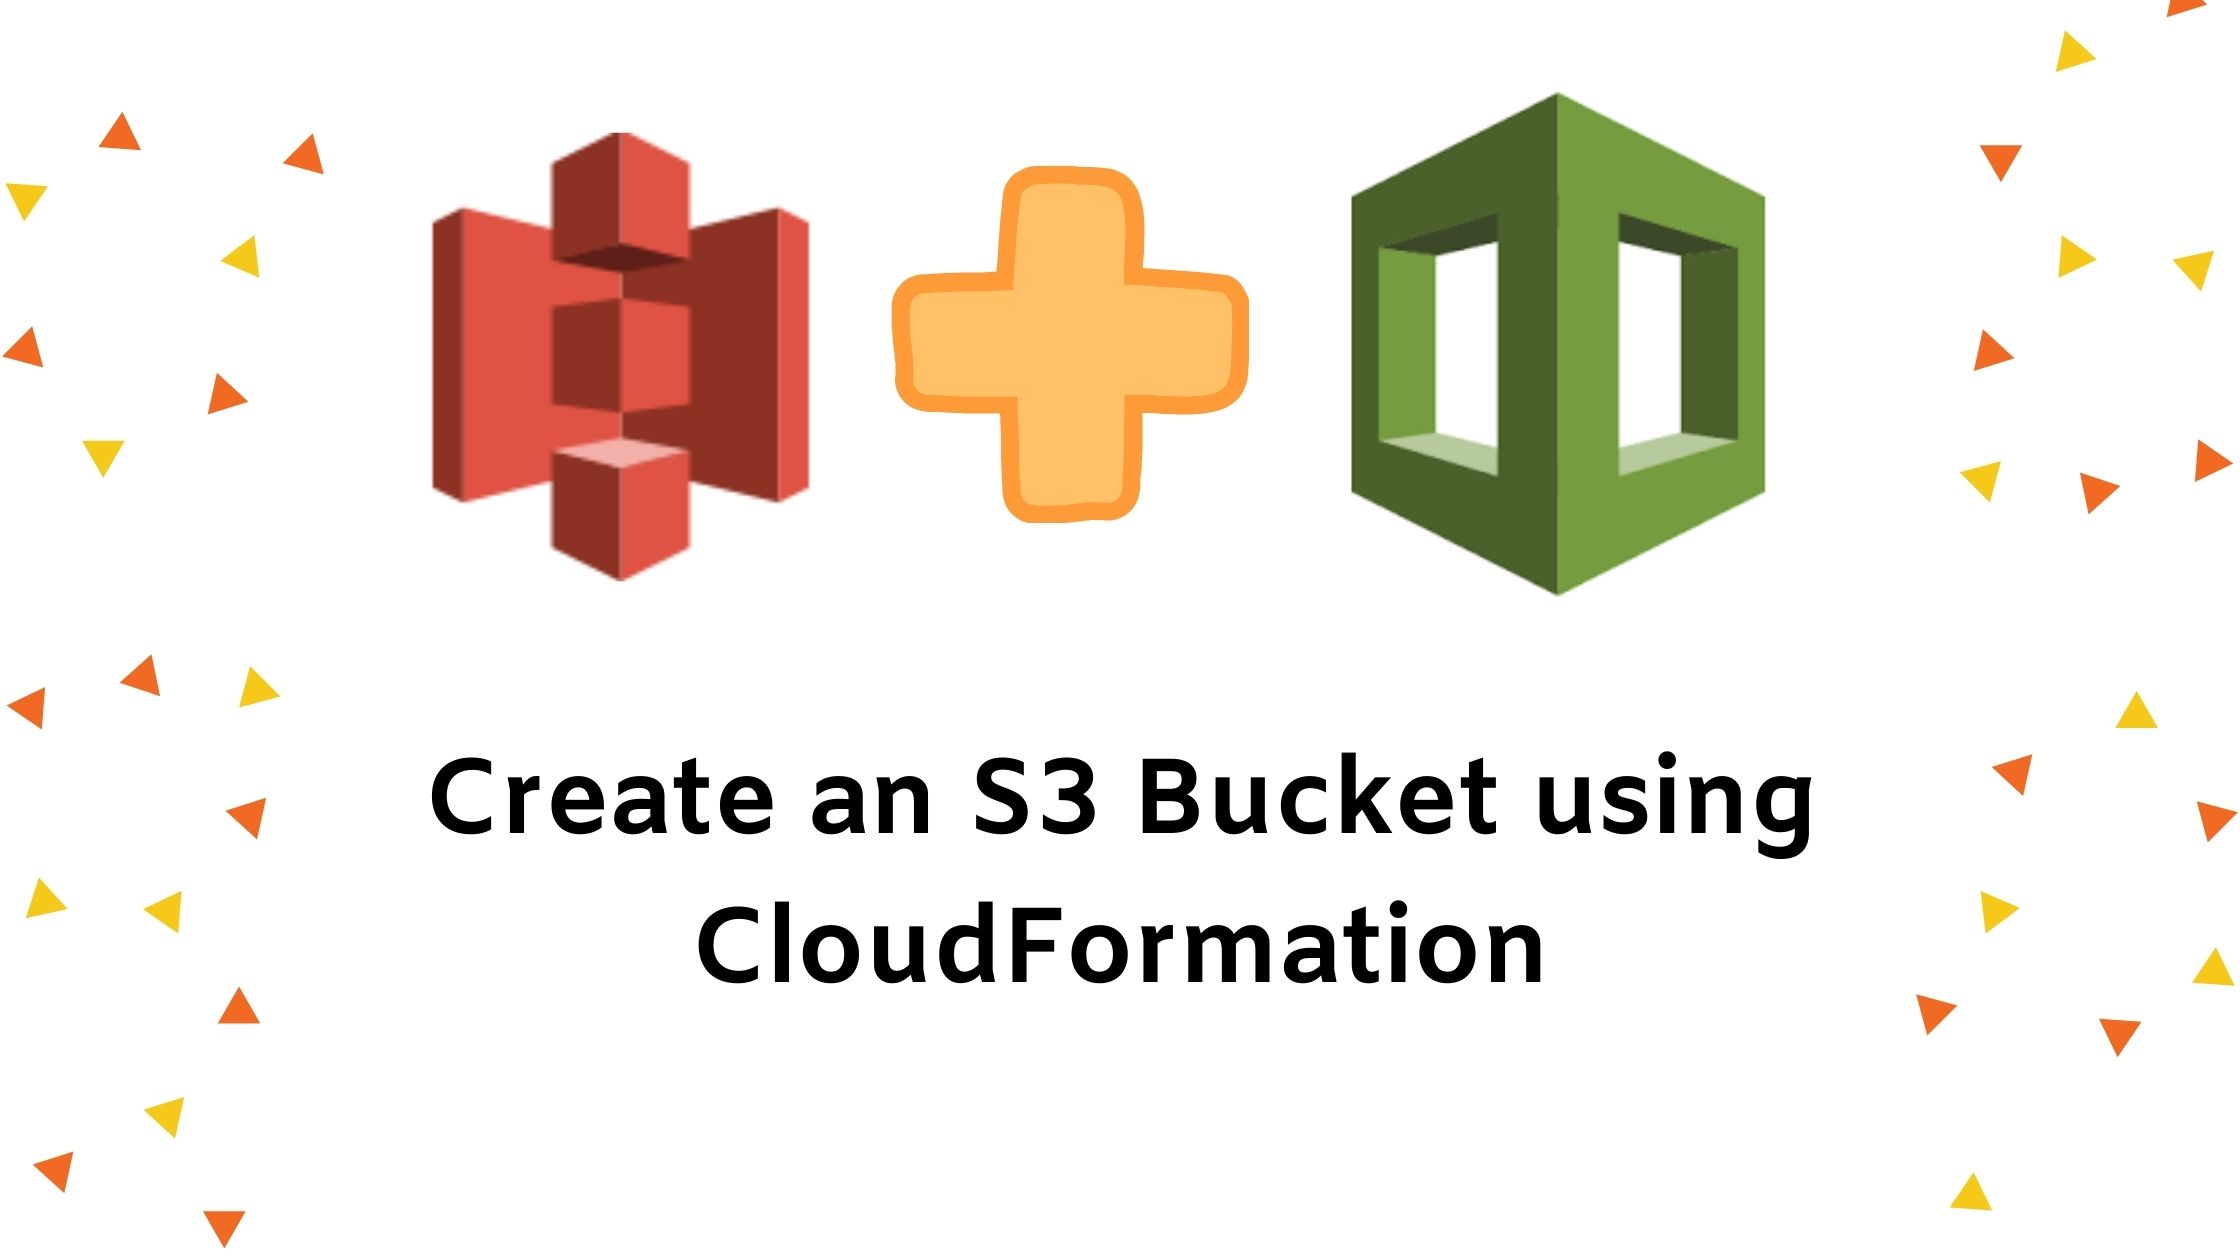 Create an S3 Bucket using CloudFormation